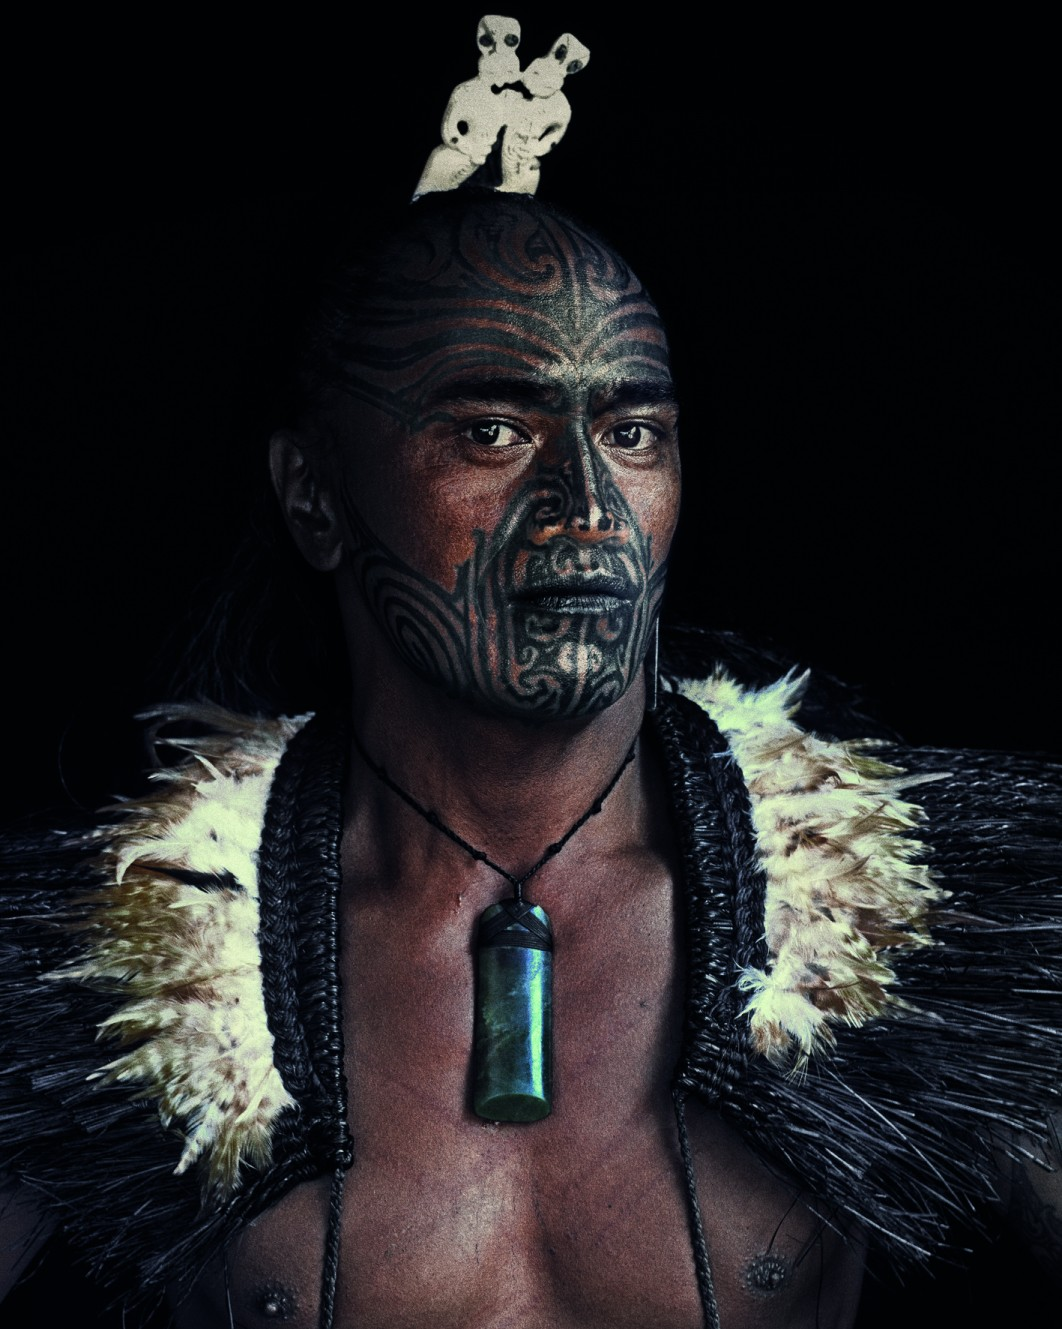 Stunning Photographs Of The World's Last Indigenous Tribes - TA MOKO